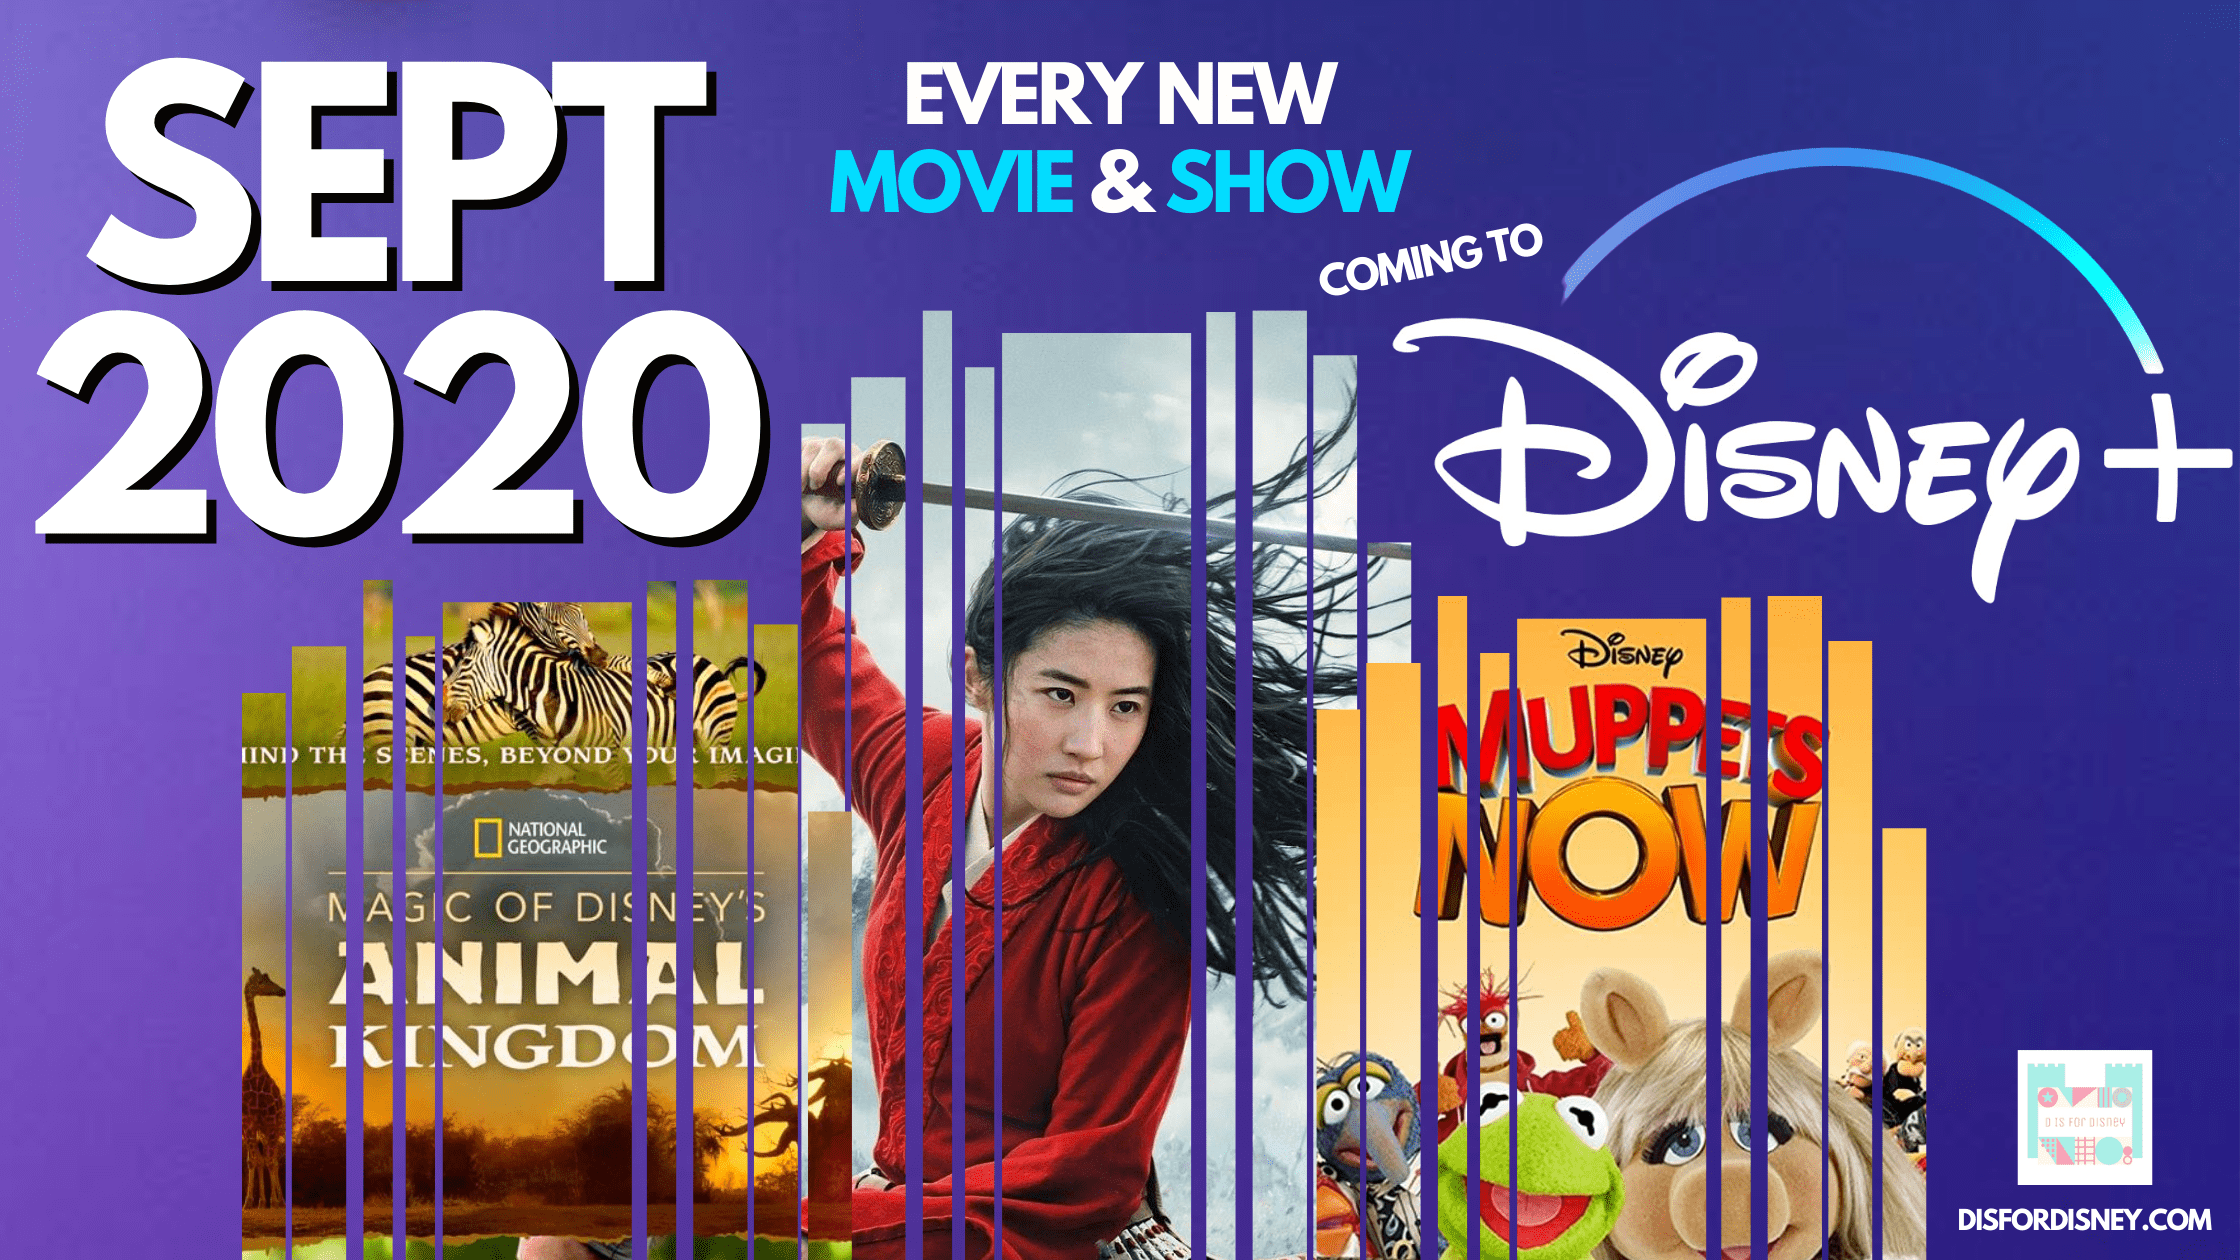 Disney Plus September 2020